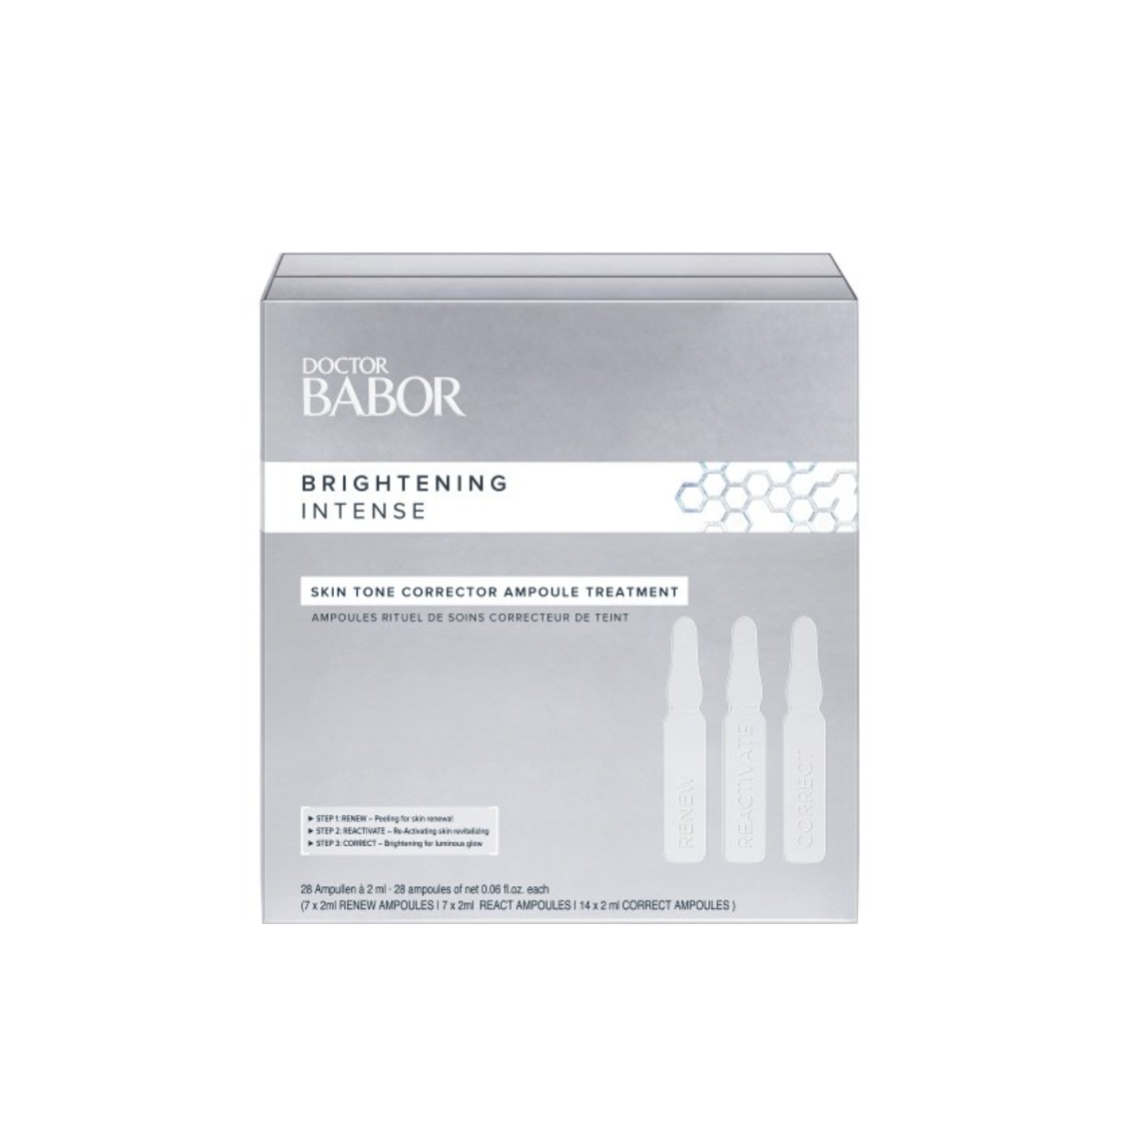 Doctor Babor Brightening Intense, Skin Tone Corrector Ampoule Treatment